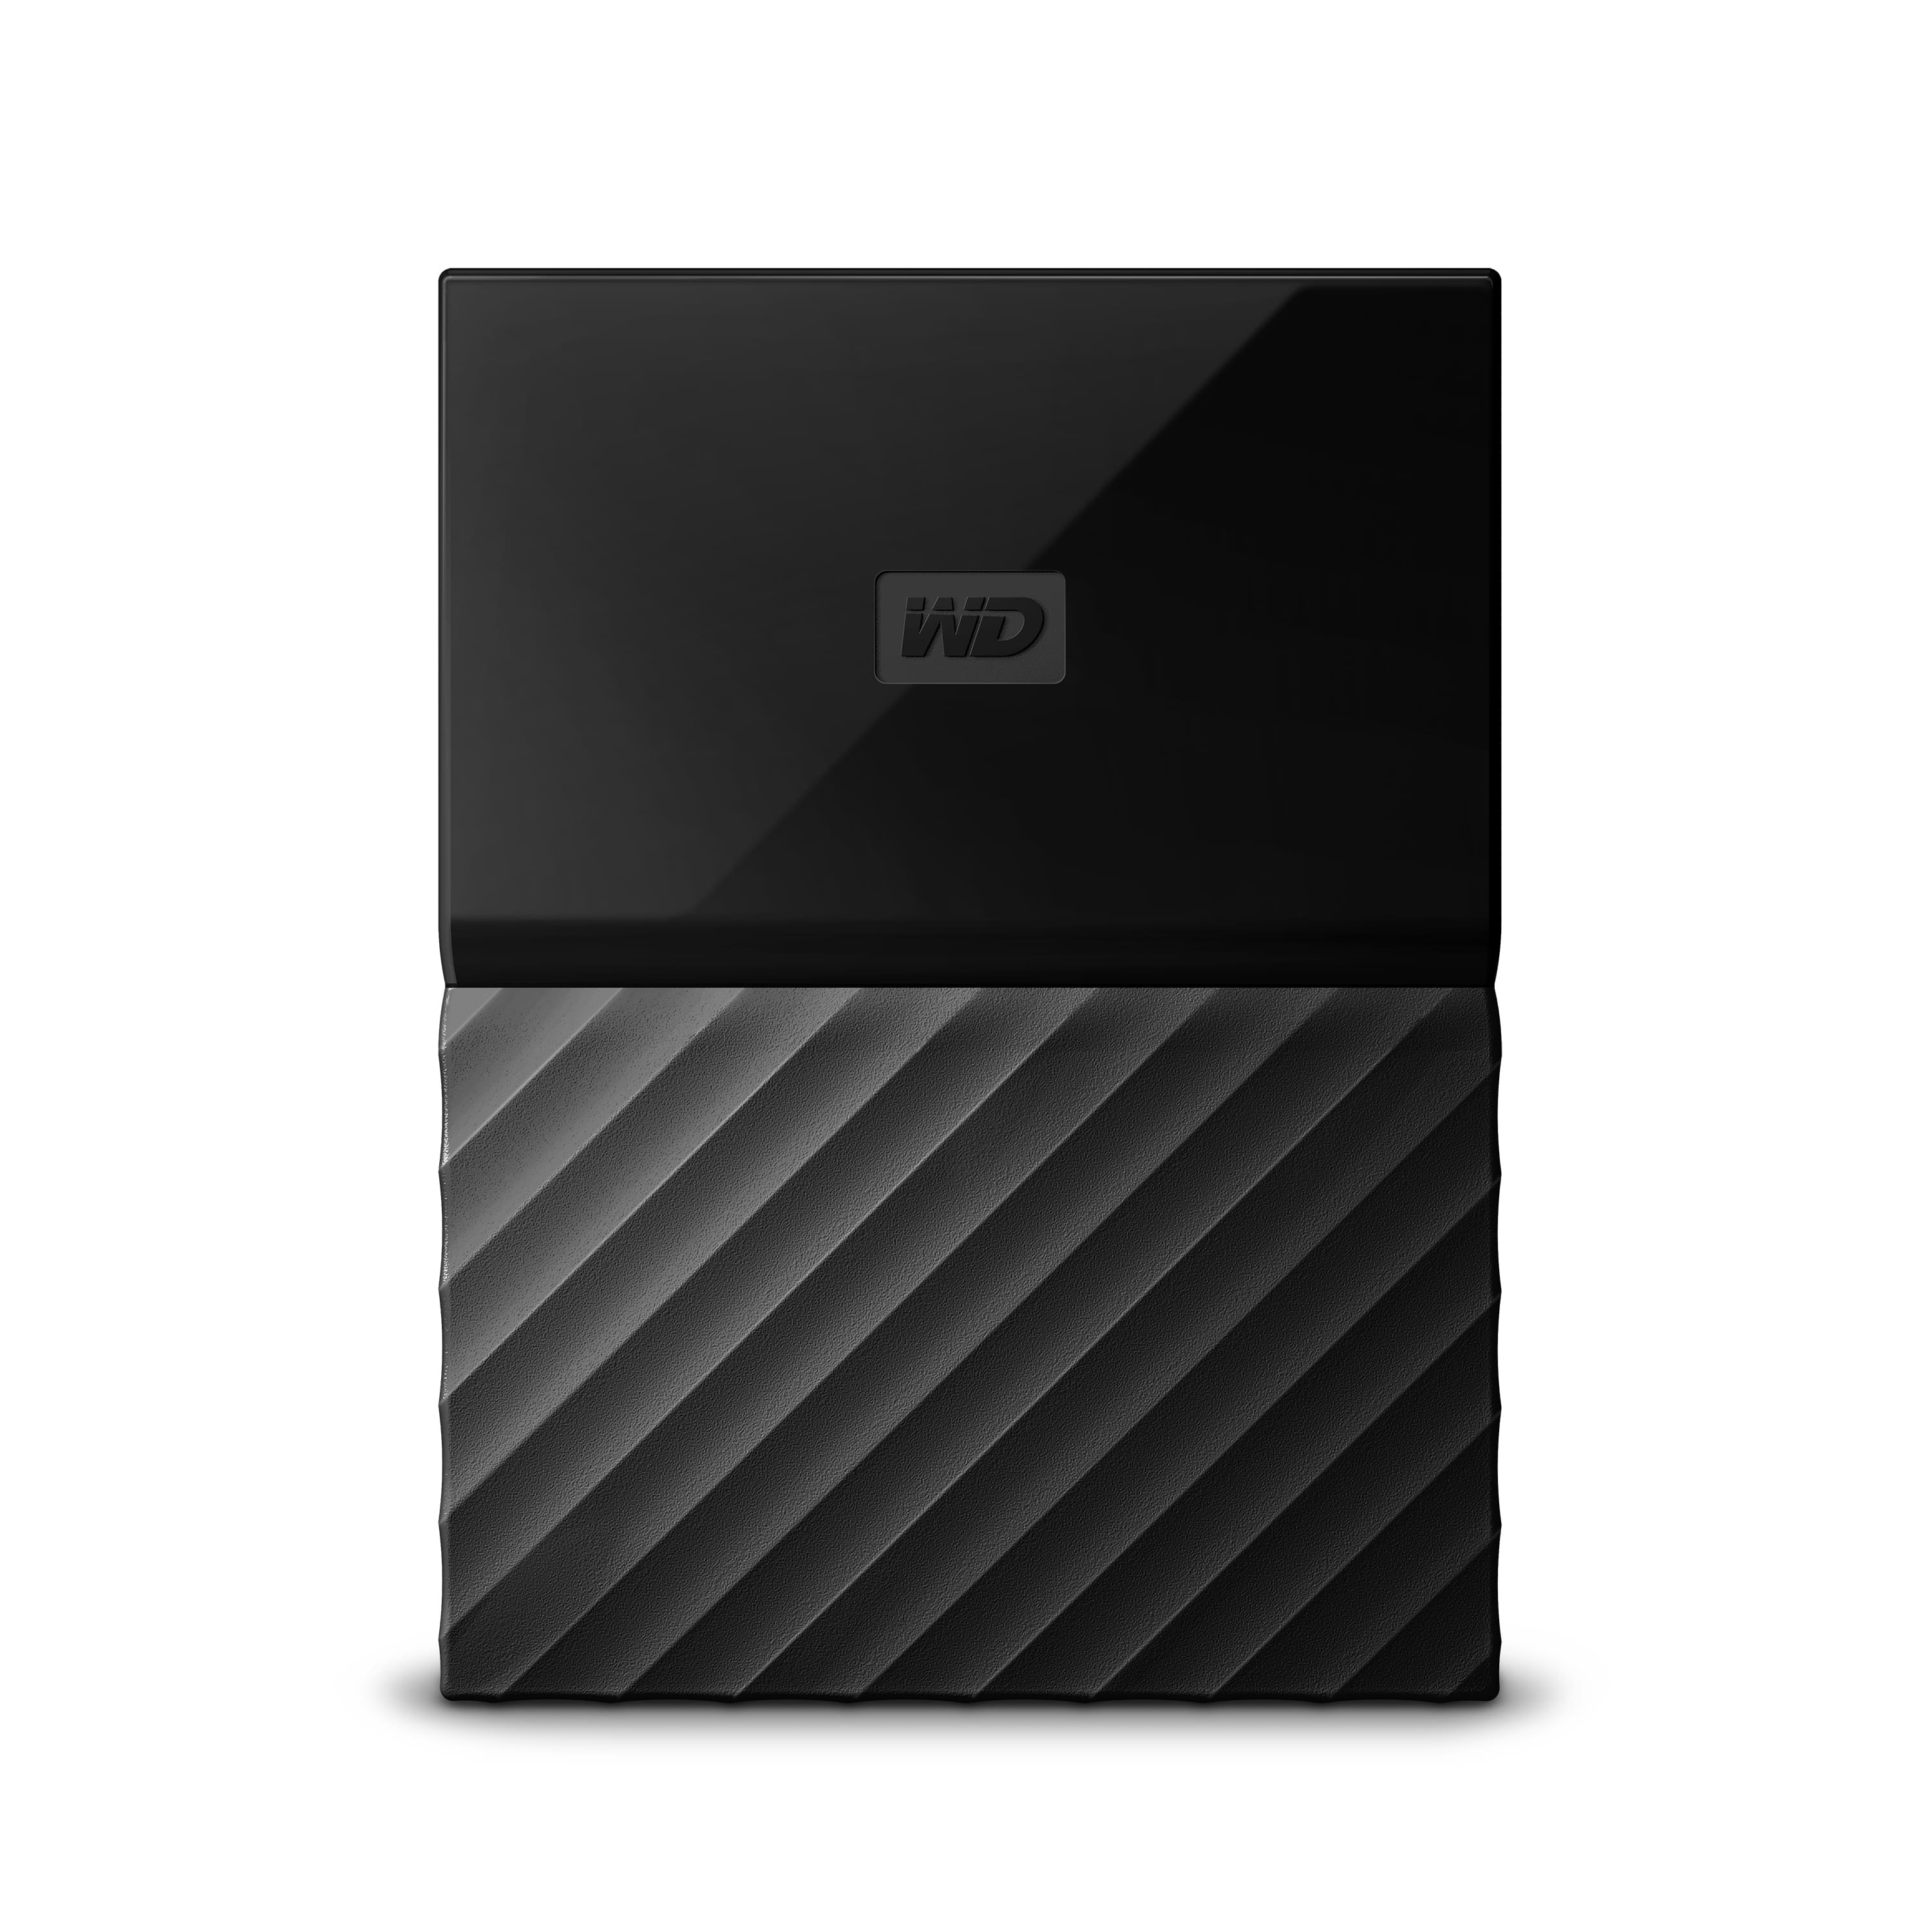 WD 2TB Black USB 3.0 My Passport Portable HDD YMMV In Store Only $45